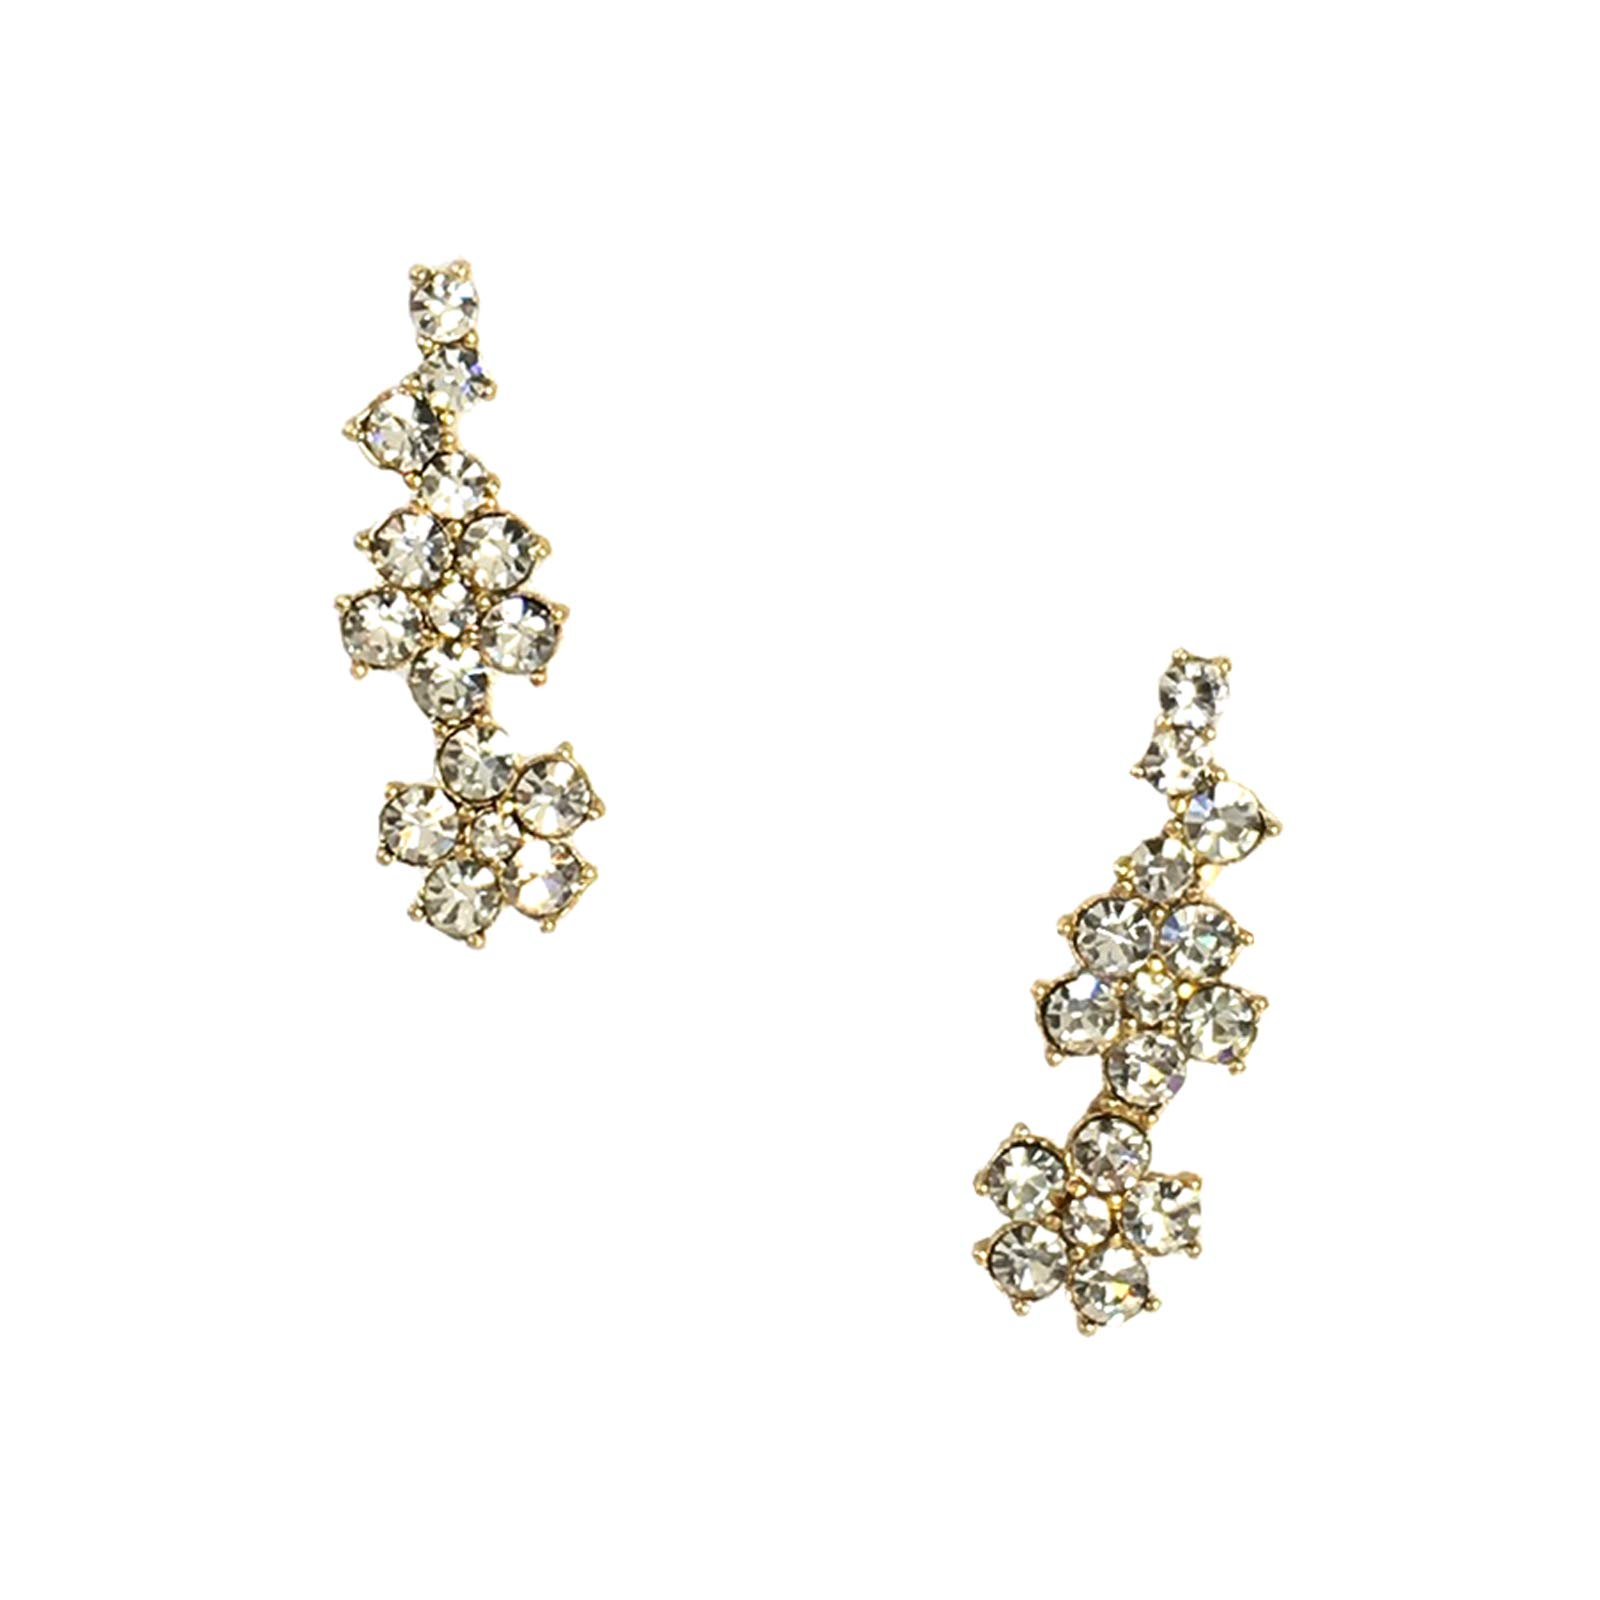 Kate Spade Crystal Flower Ear Pin Crawler Earrings, Clear by Kate Spade New York (Image #1)